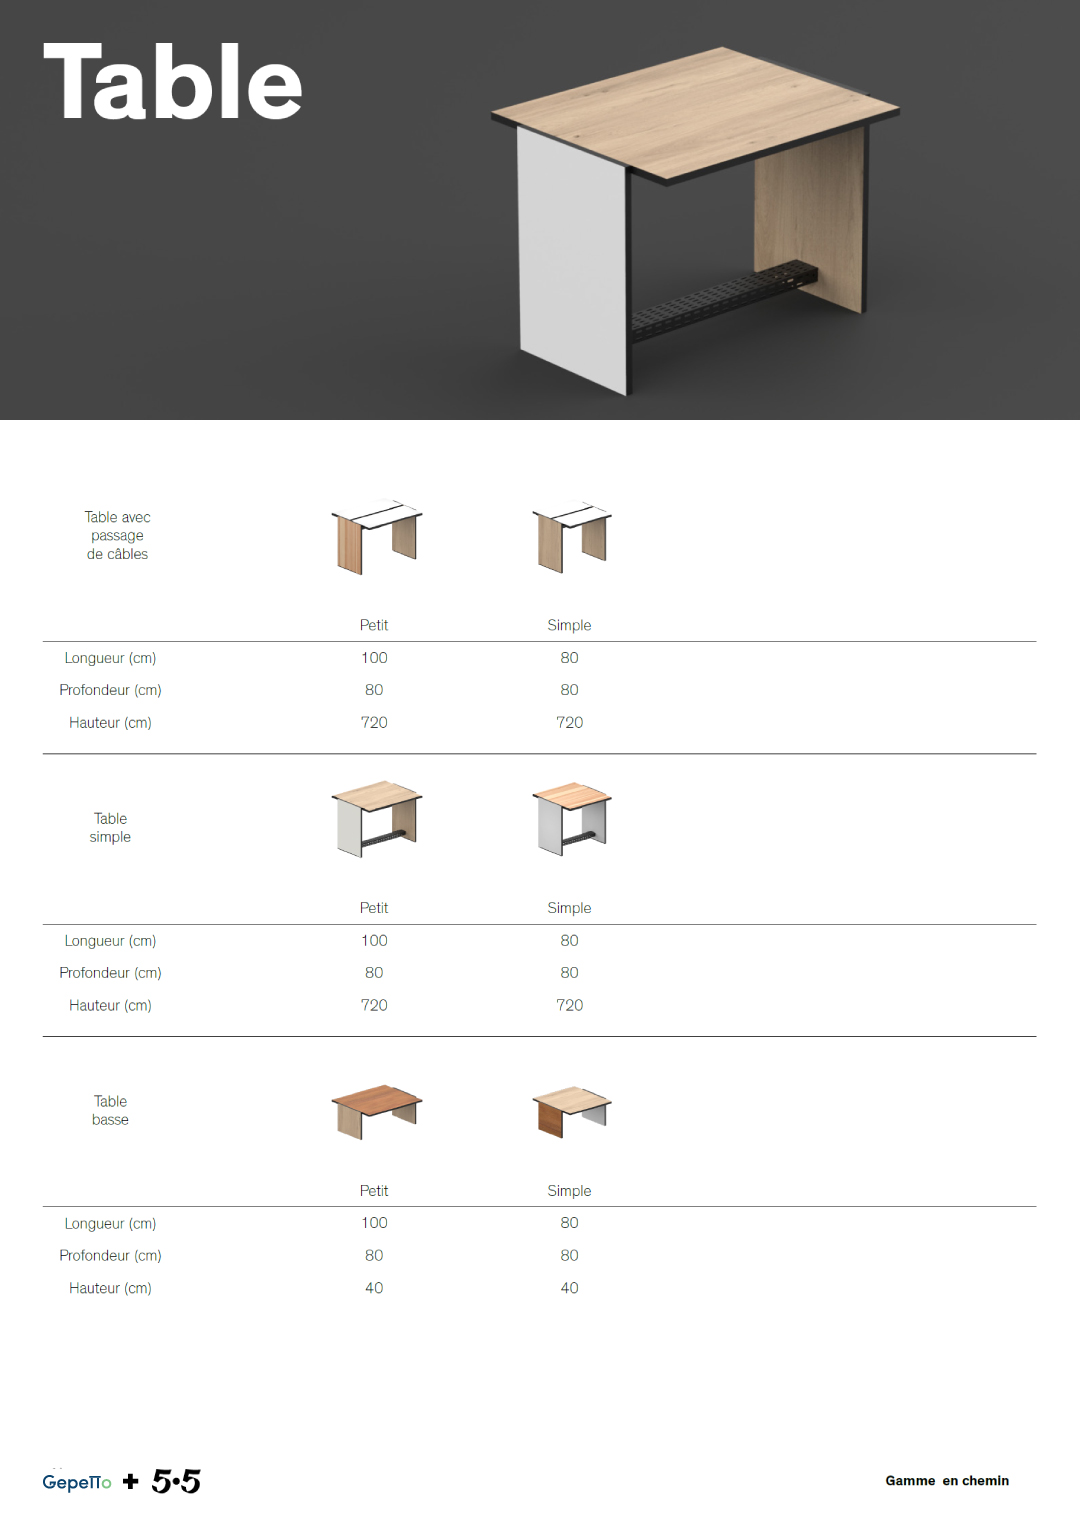 gepetto-mobilier-de-bureau-design-solidaire-produit-table